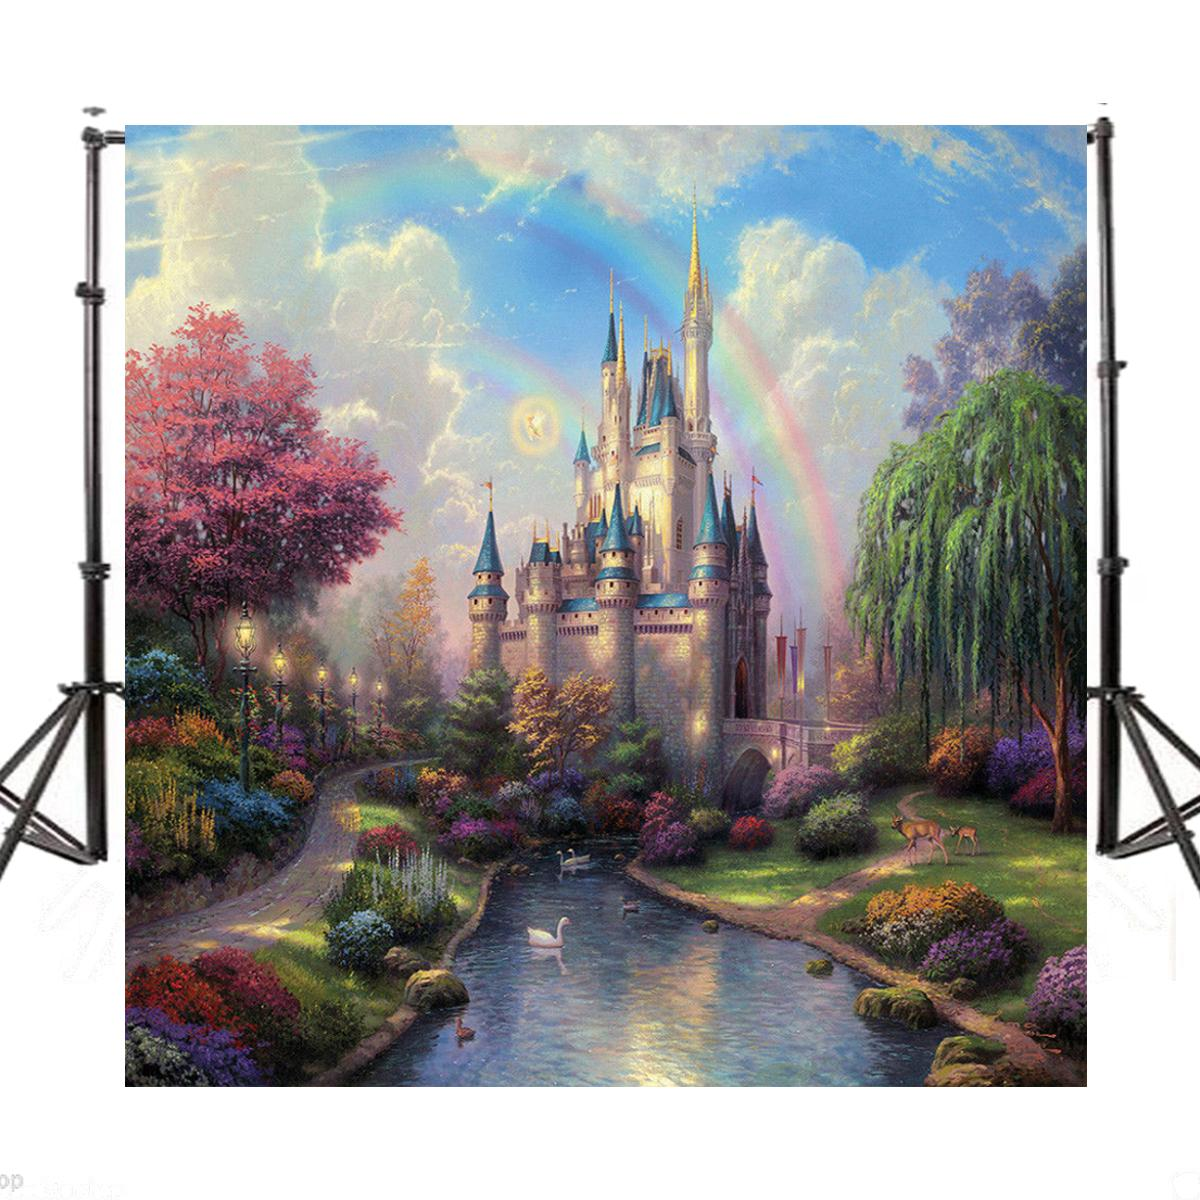 6x6ft Fairytale Castle River Baby Photography Background Vinyl Photo Backdrops 2018 New Arrival kate 300x600cm photography background castle photography baby backdrops castle creek cartoon background newborn photograph